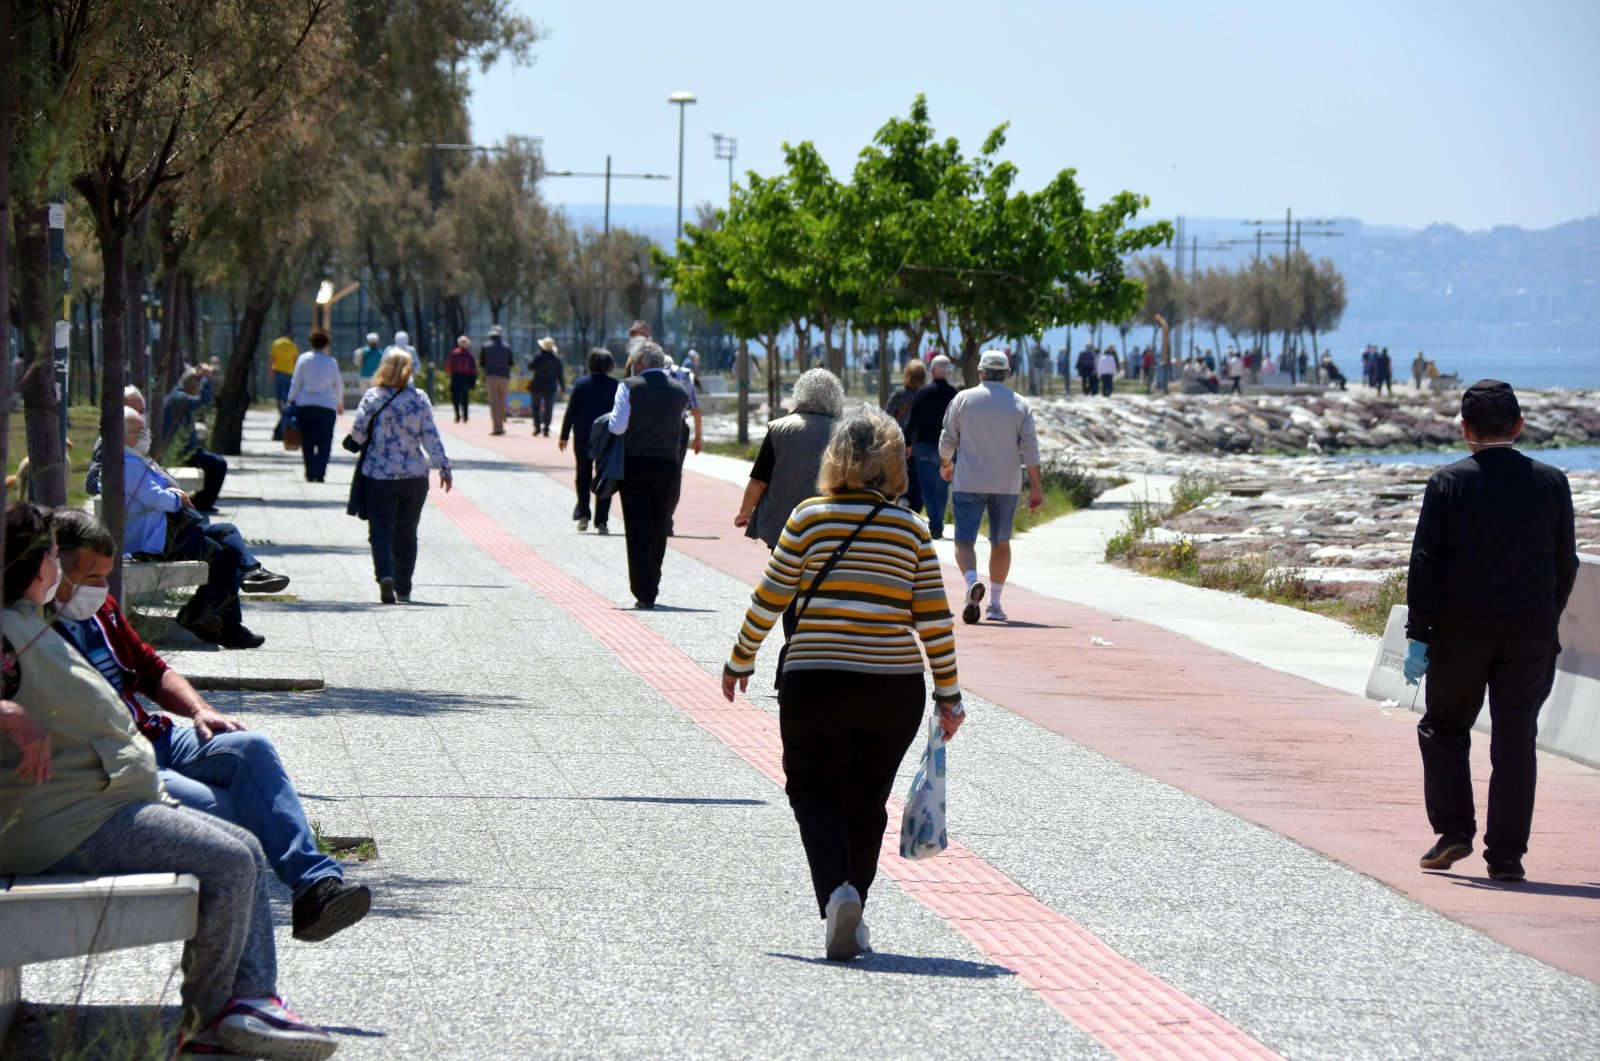 Senior citizens go for a stroll in Izmir's Karşıyaka after the curfew was temporarily lifted, May 10, 2020 (DHA Photo)